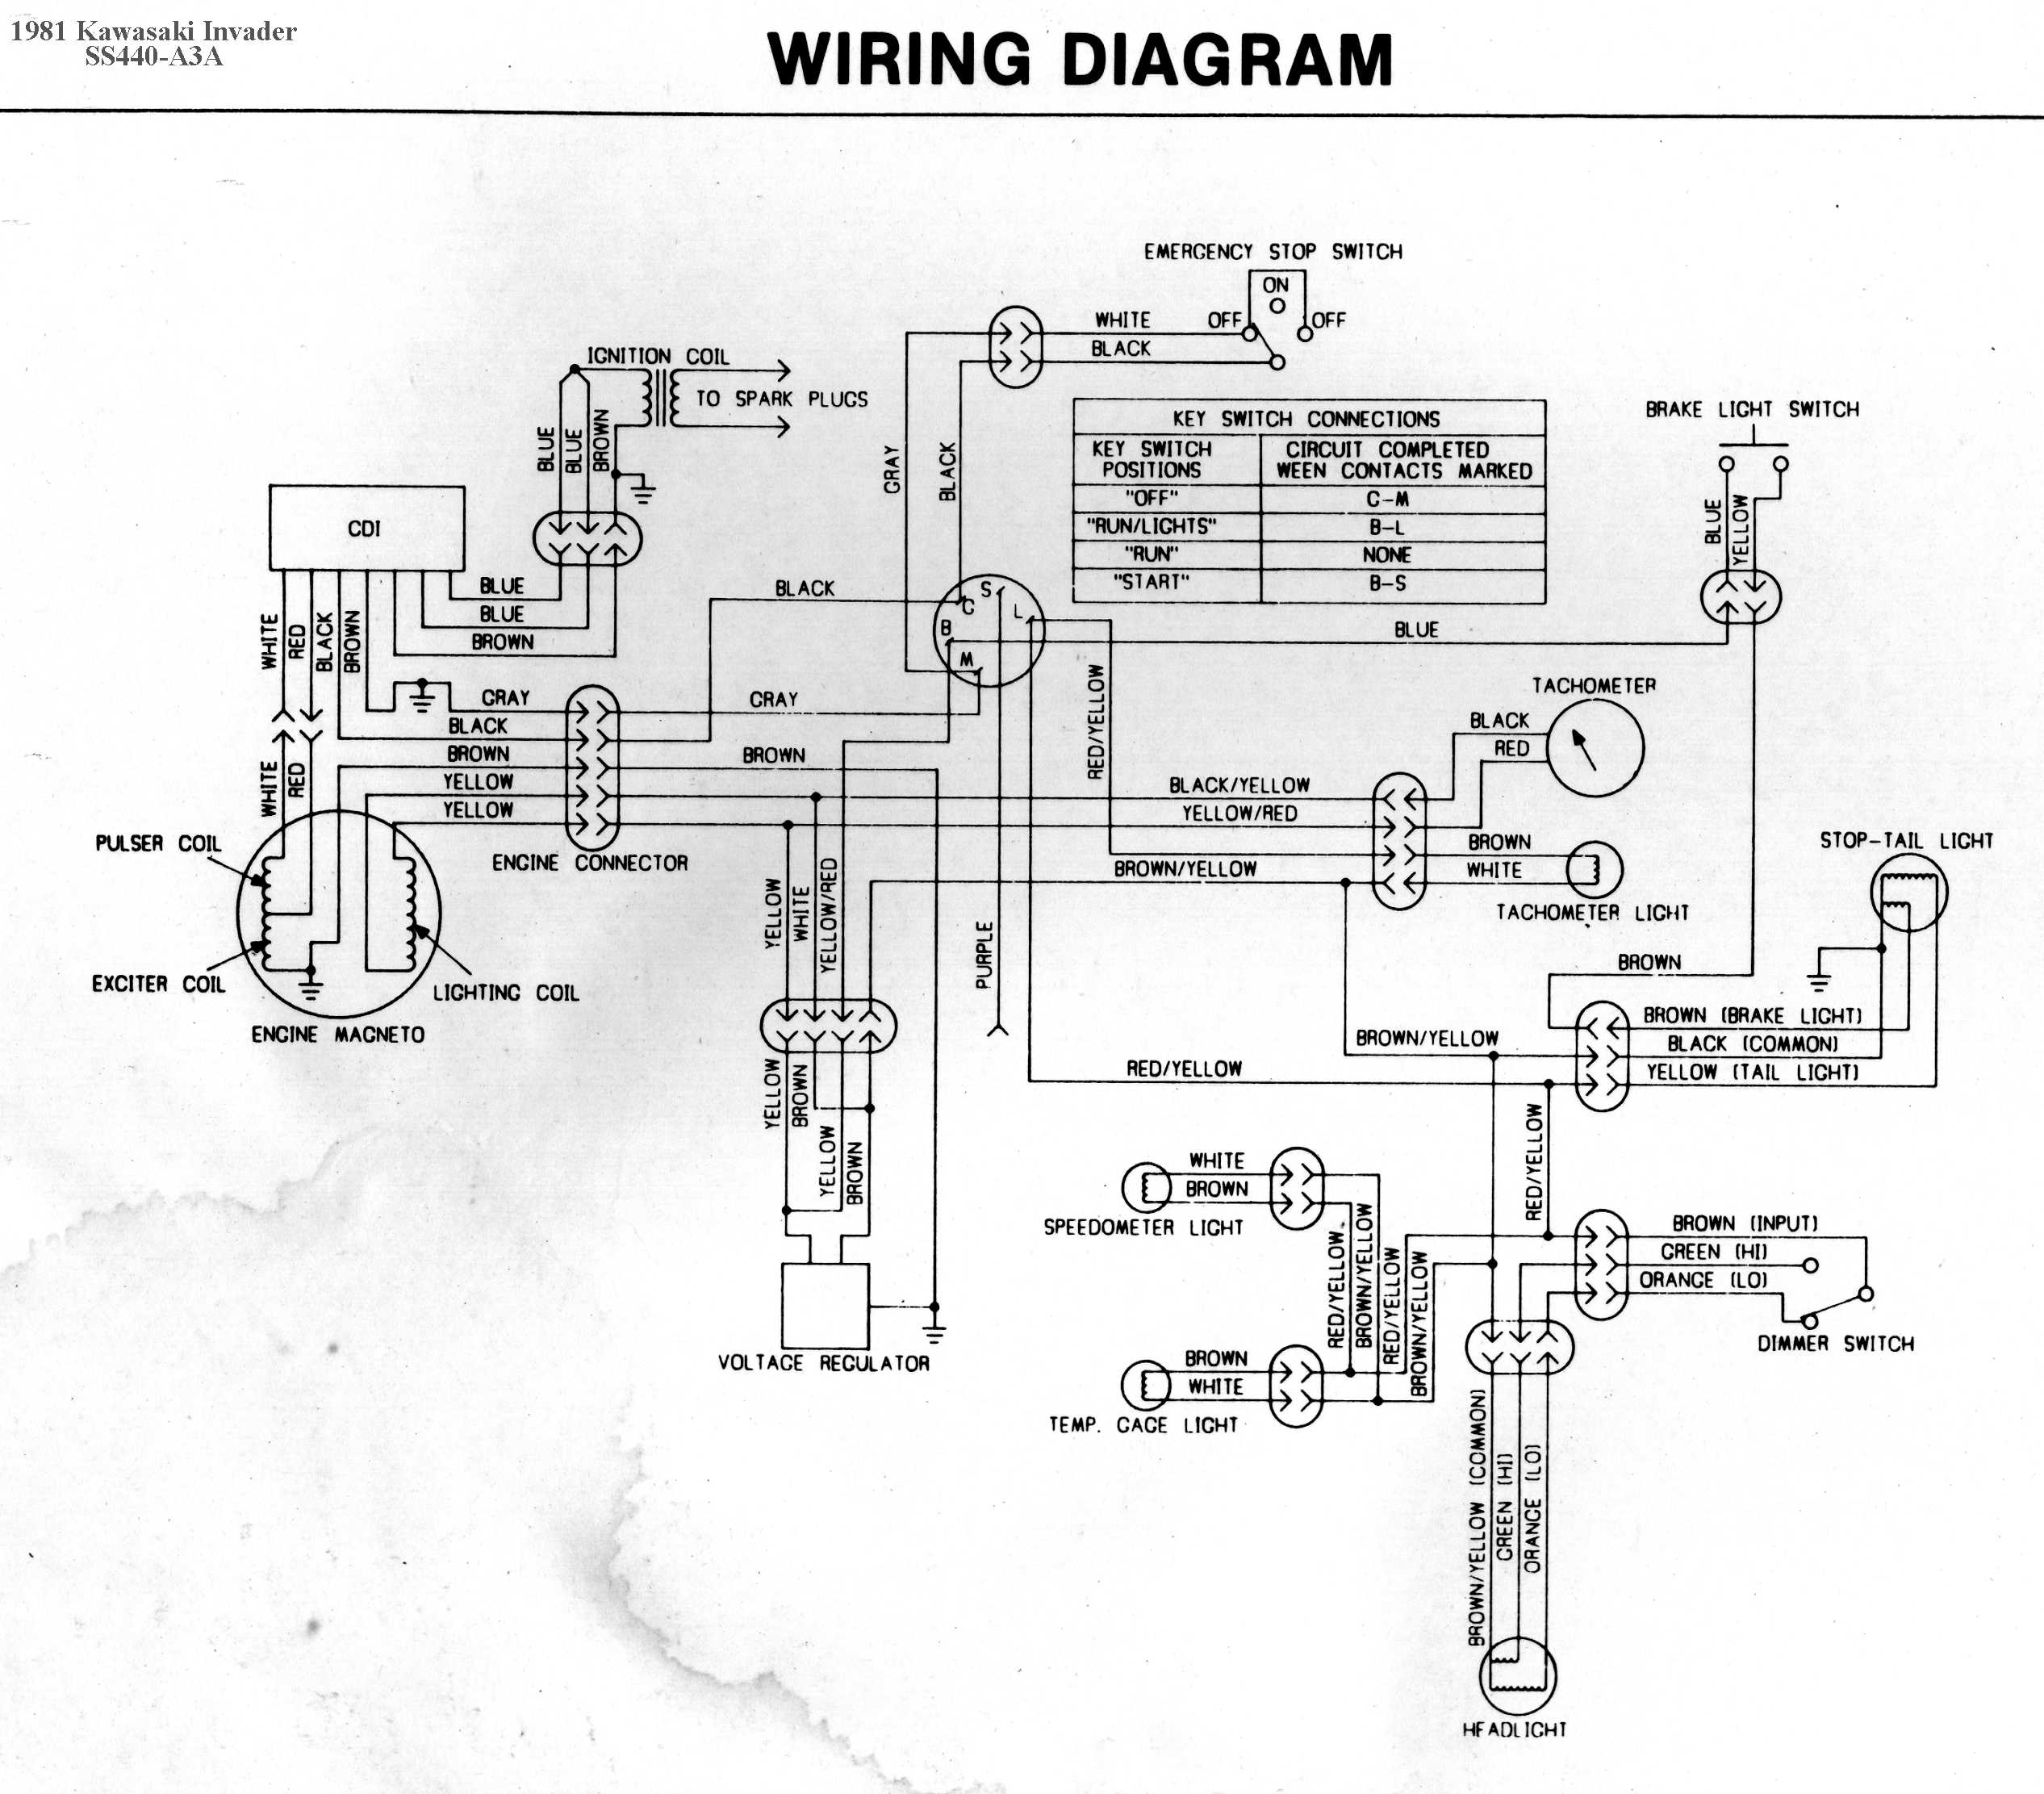 diagram] 2010 ski wiring diagram full version hd quality wiring diagram -  tilediagram.usrdsicilia.it  diagram database - usrdsicilia.it